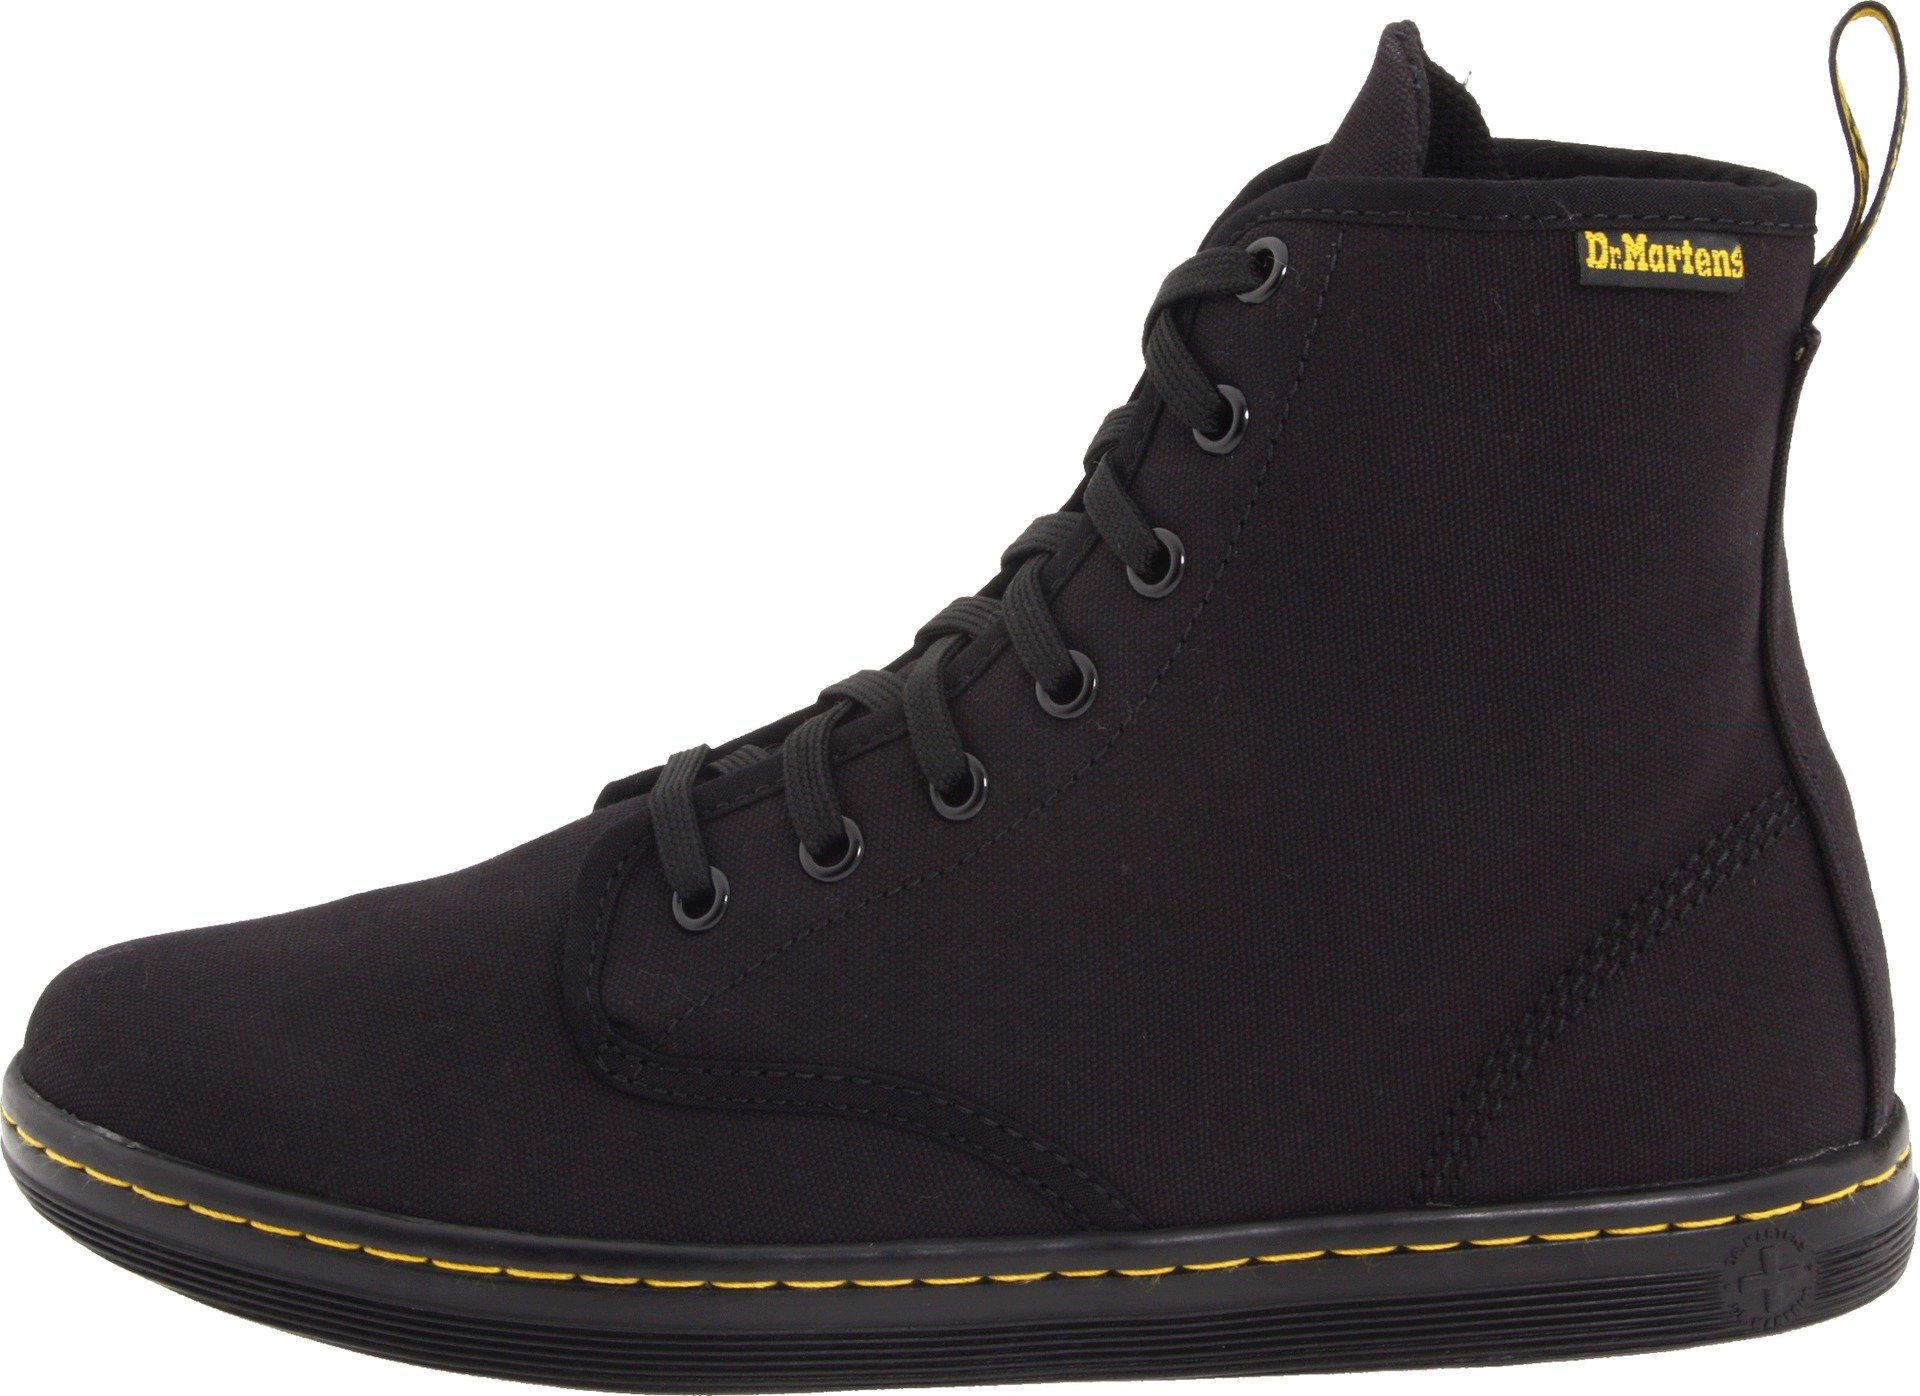 Dr. Martens Women's Shoreditch Boot,Black,5 UK (US Women's 7 M) by Dr. Martens (Image #5)